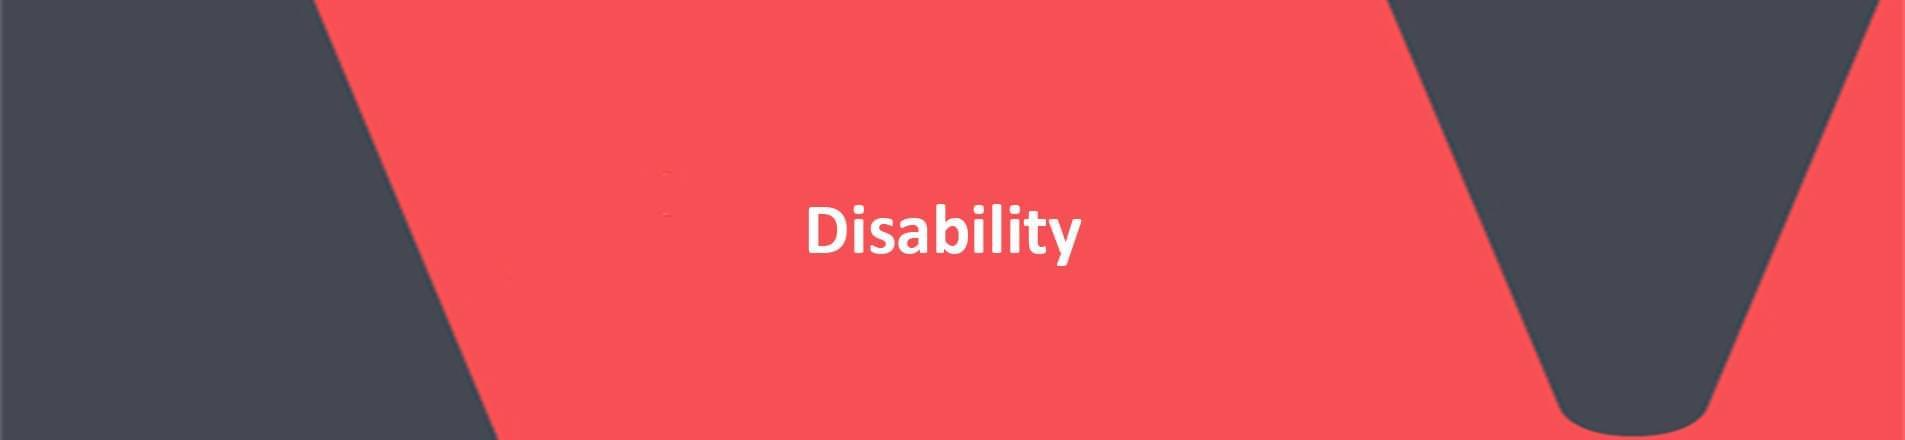 The word Disability on VERCIDA branded background